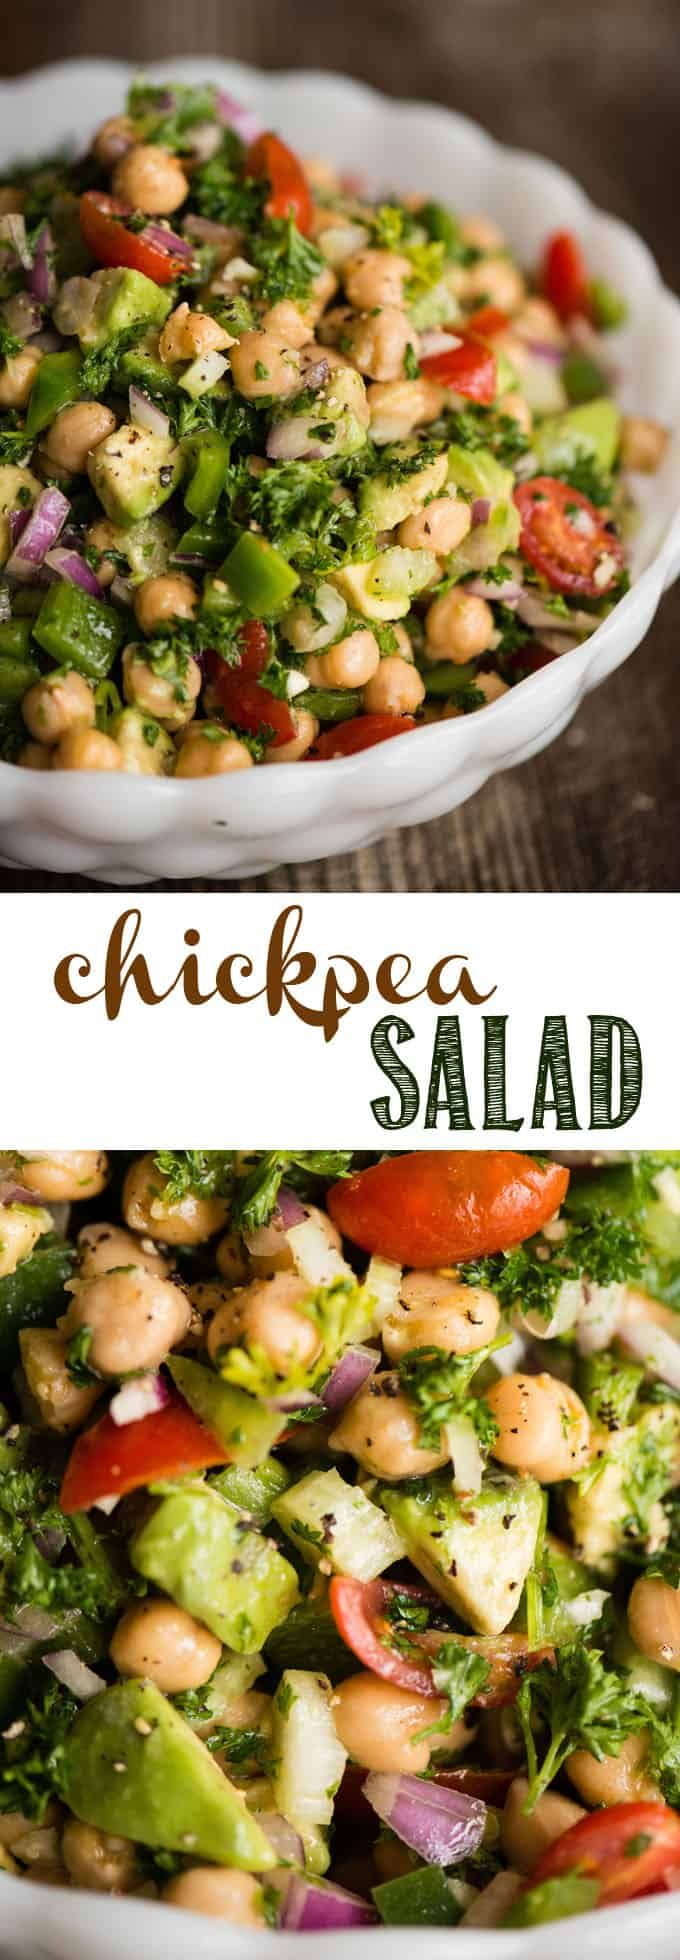 Chickpea Salad is a quick and easy throw together salad ...